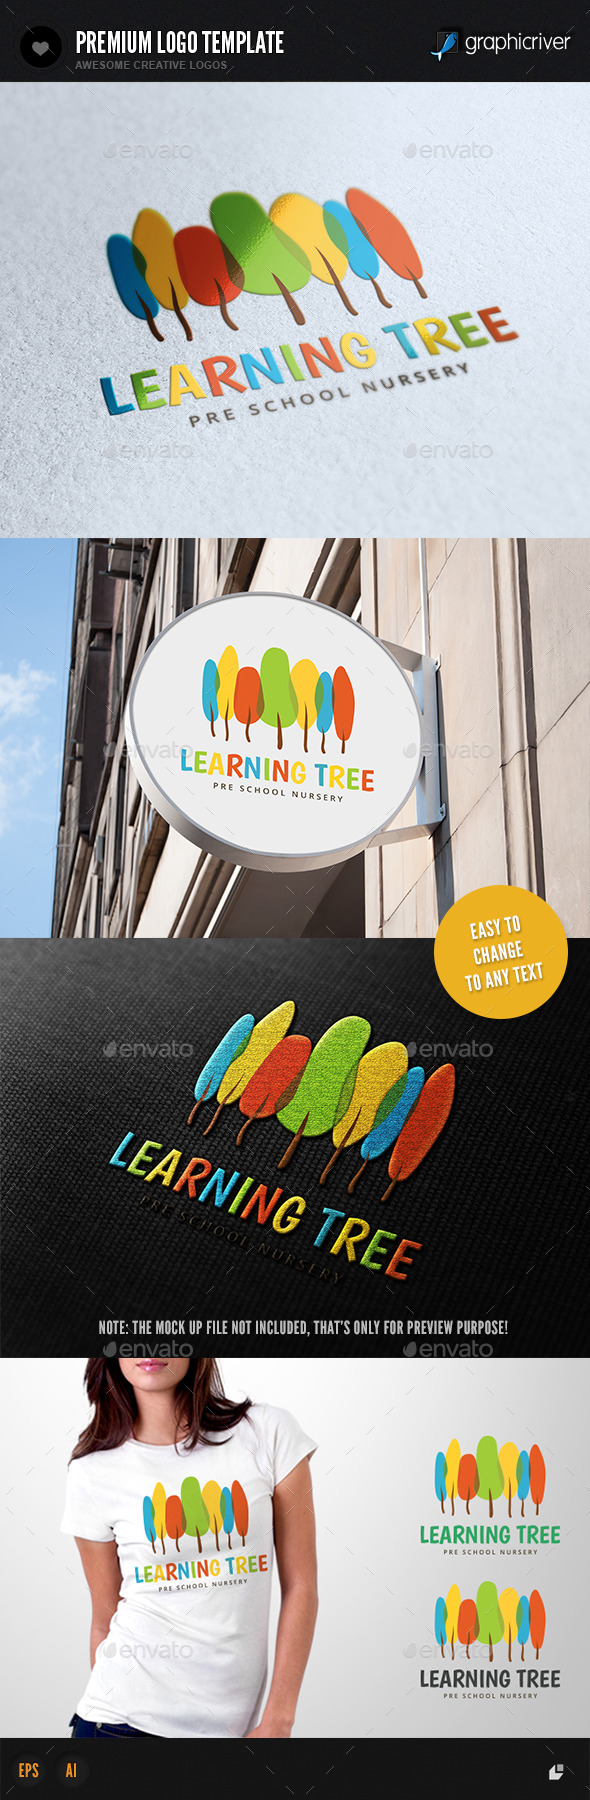 GraphicRiver Learning Tree Pre School Nursery 10784469